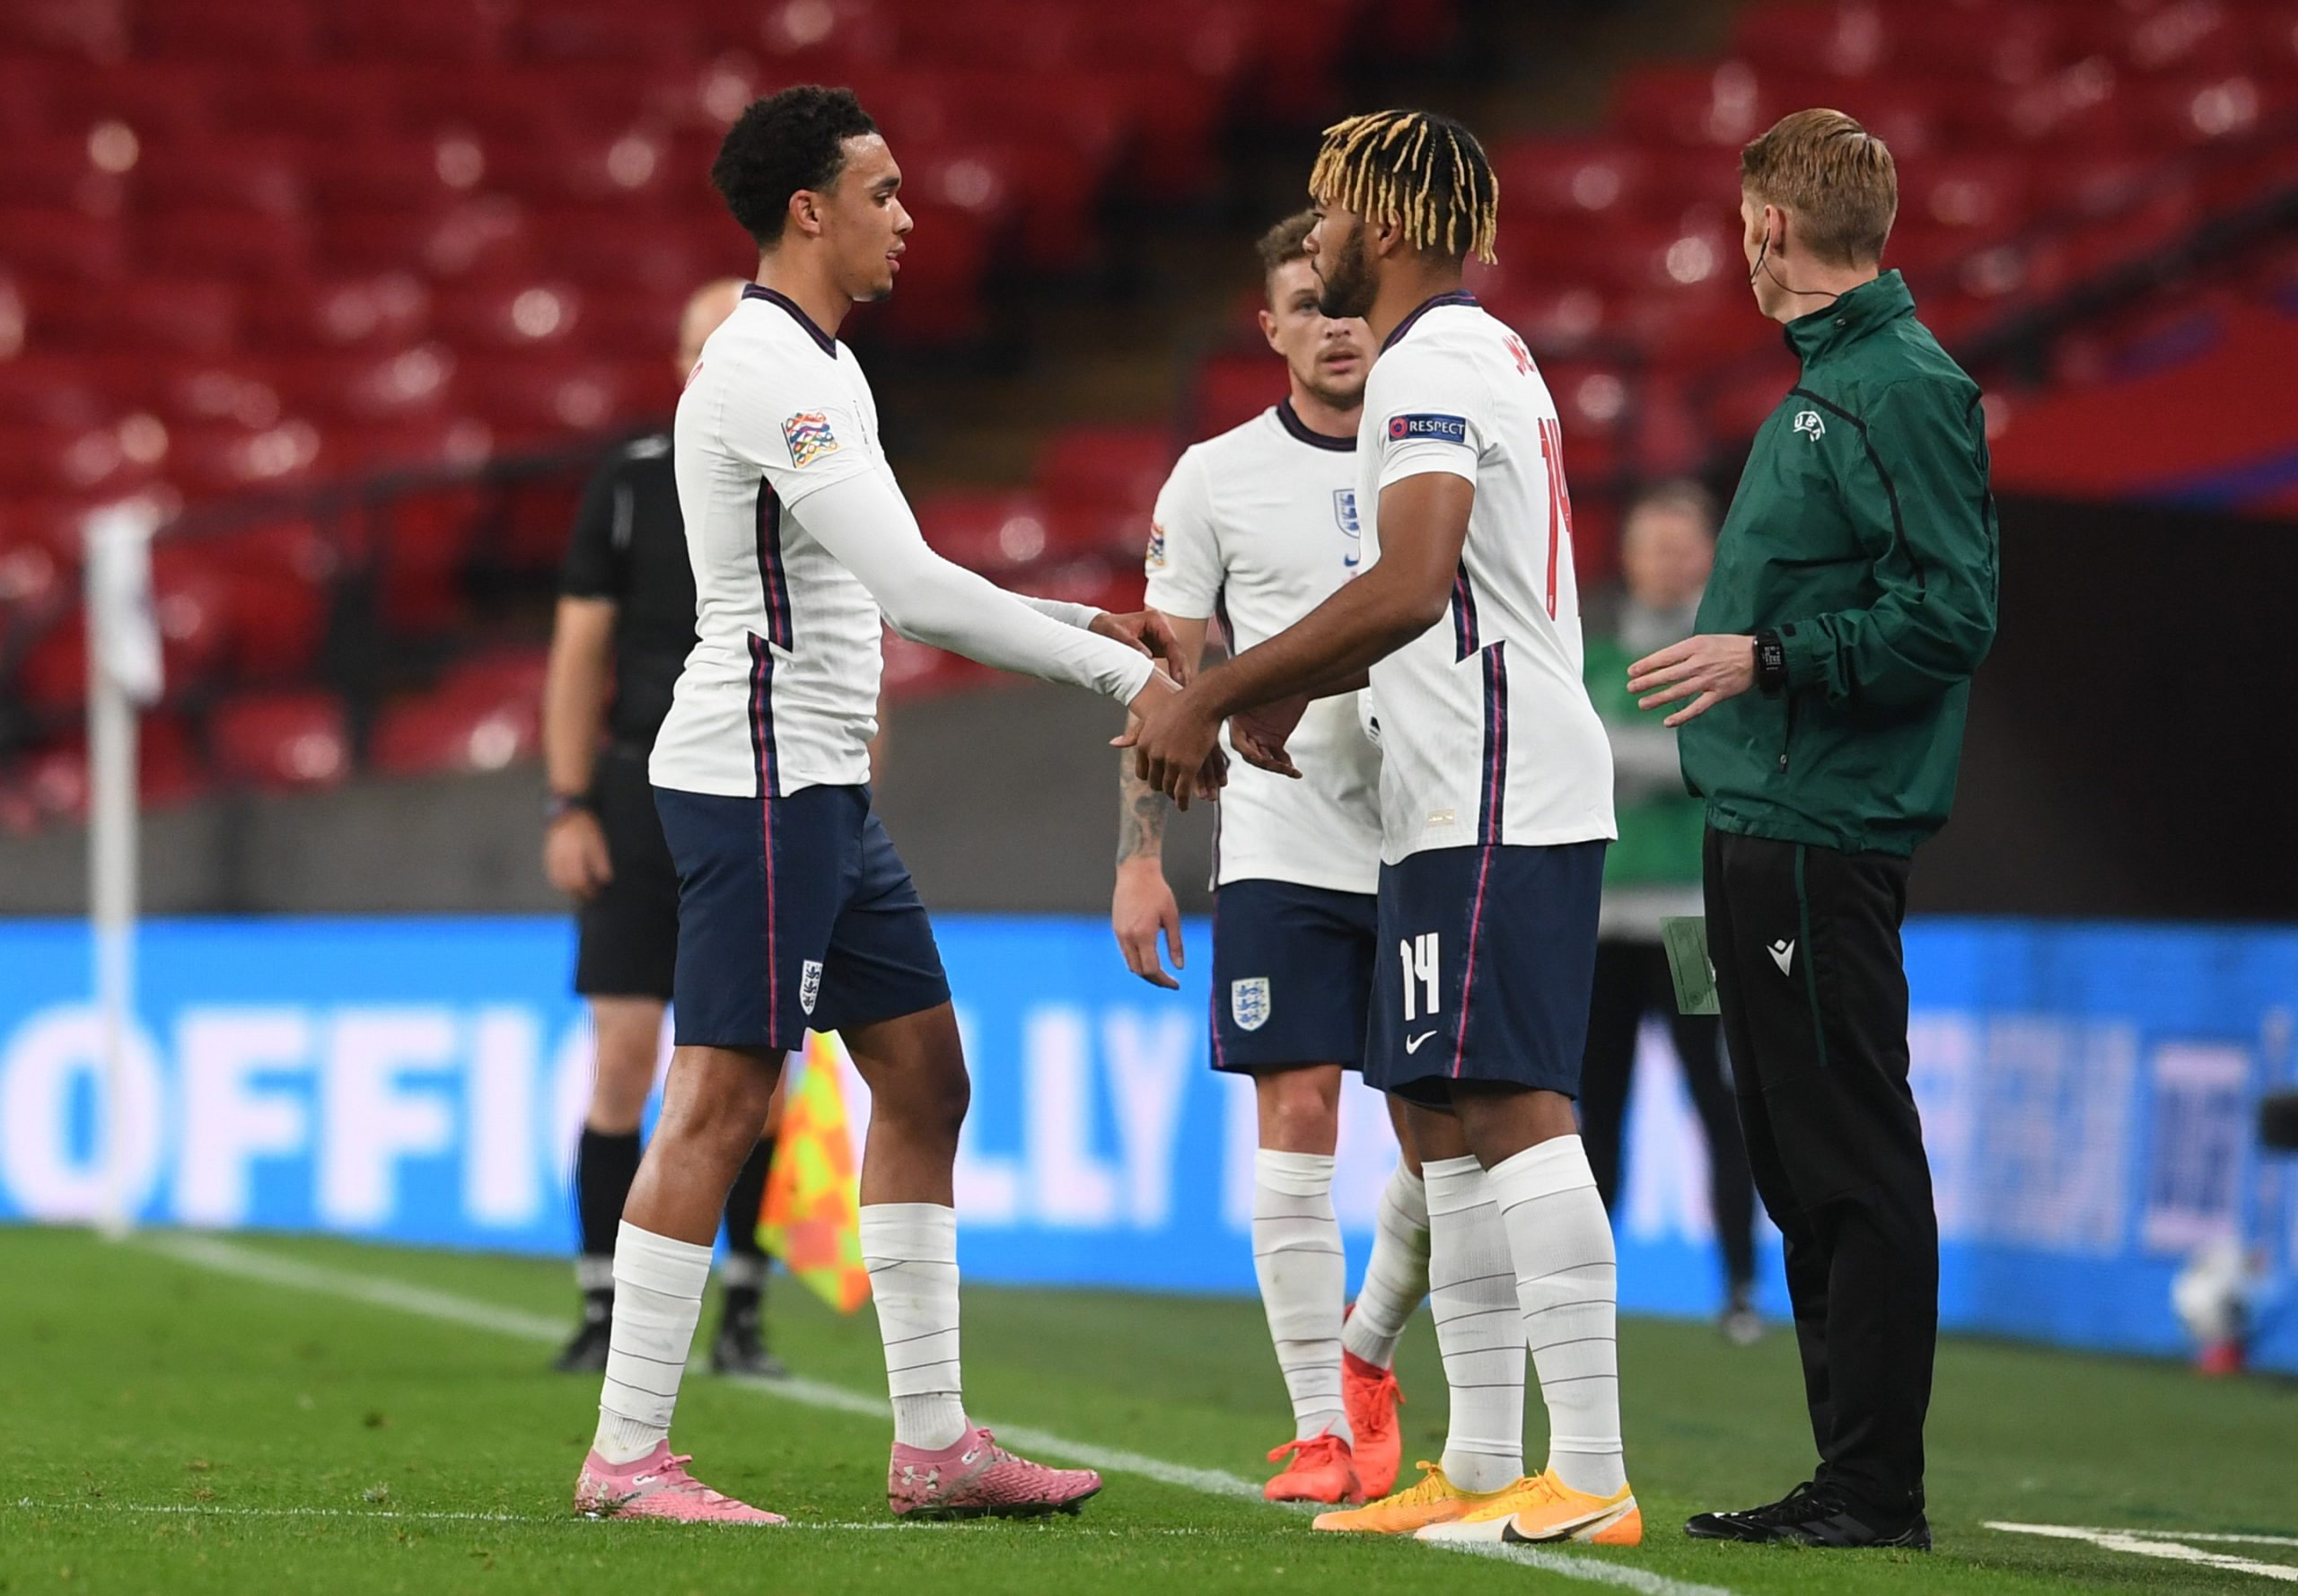 LONDON, ENGLAND - OCTOBER 11: Trent Alexander-Arnold of England is replaced by Reece James of England during the UEFA Nations League group stage match between England and Belgium at Wembley Stadium on October 11, 2020 in London, England. Football Stadiums around Europe remain empty due to the Coronavirus Pandemic as Government social distancing laws prohibit fans inside venues resulting in fixtures being played behind closed doors. (Photo by Neil Hall - Pool/Getty Images)